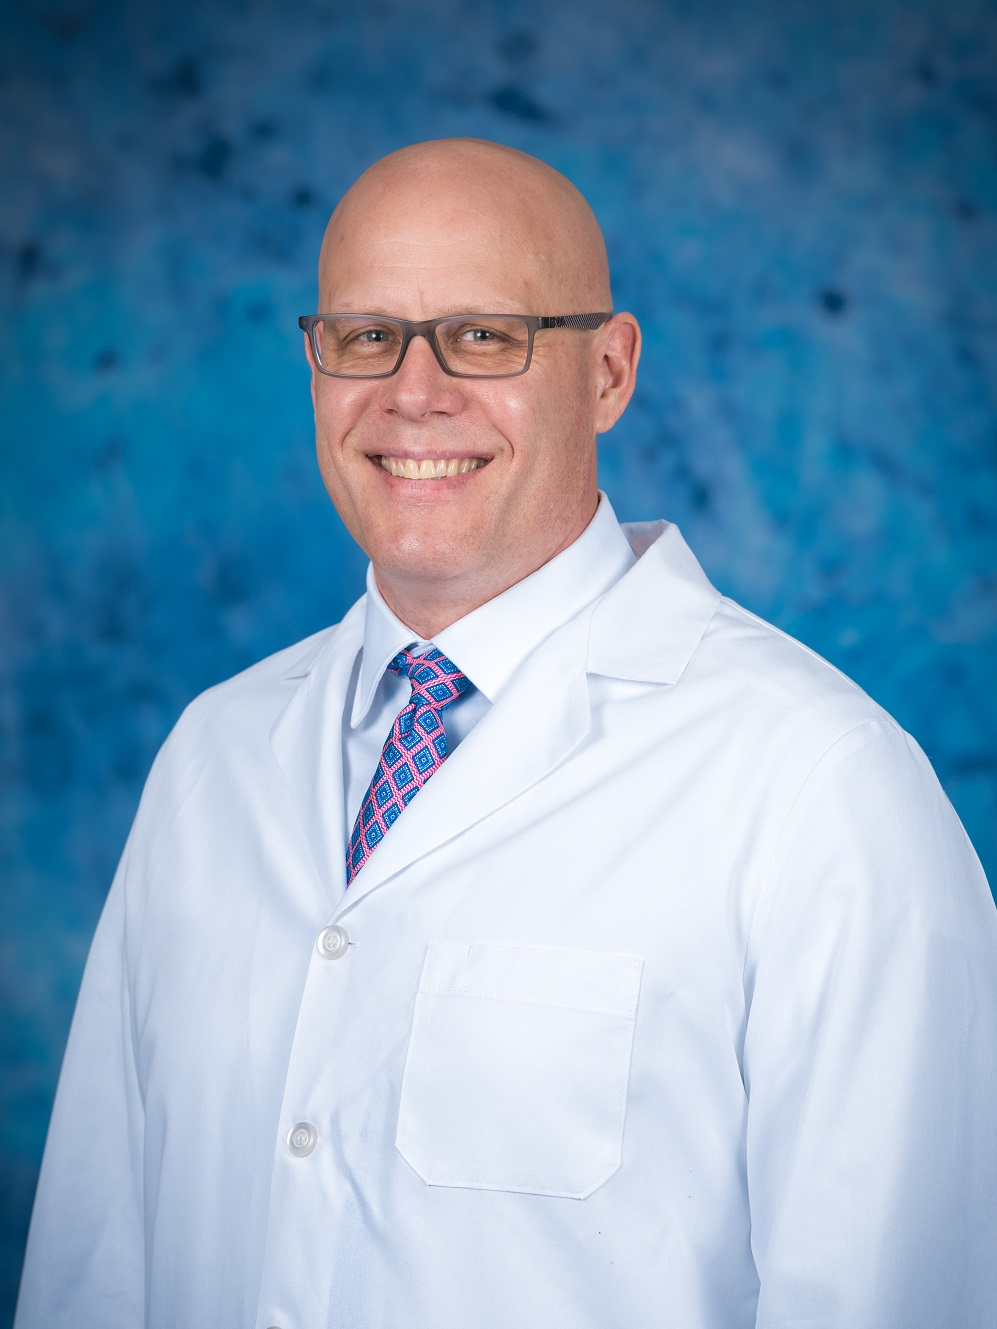 Tyler Gunderson, MD of Cumberland Orthopedics